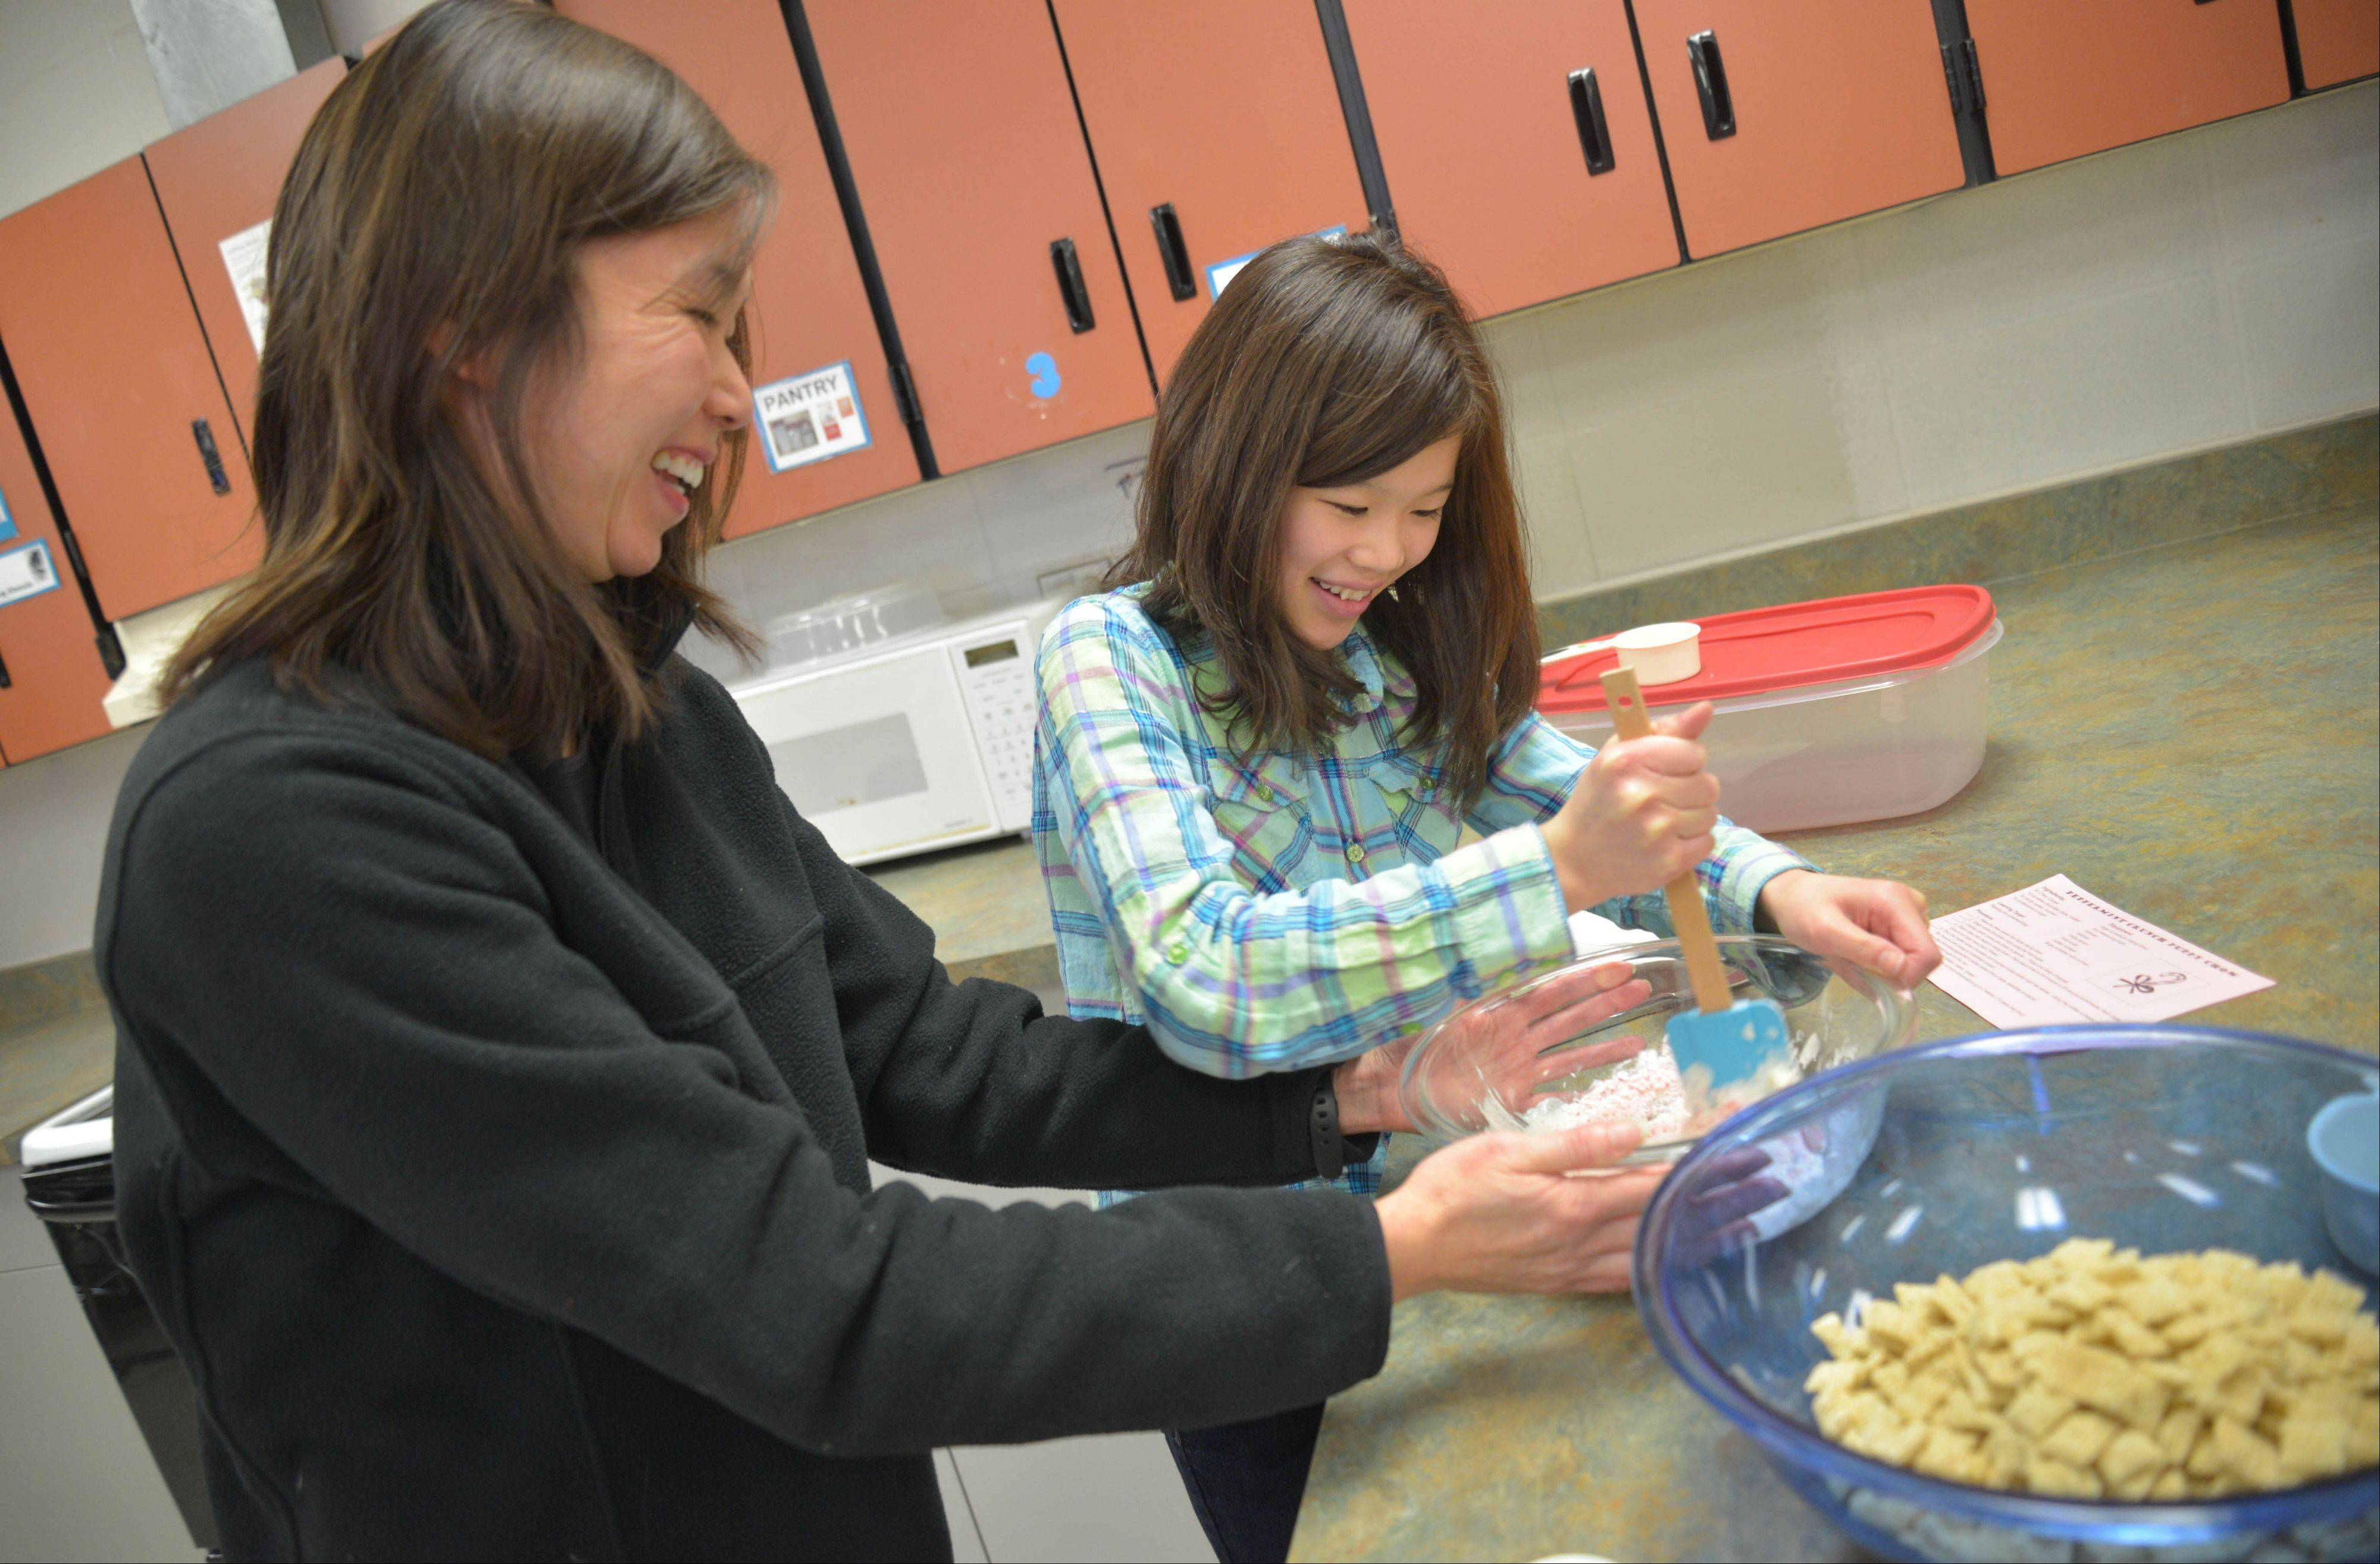 Frances Hung of Naperville and her daughter Elizabeth, 11, mix ingredients for peppermint crunch puppy chow during Toasty Tales, Gregory Middle School�s first family reading night. The cooking activity challenged kids to use their reading skills to follow a recipe, said Esther Bevan, director of the school�s library media center.